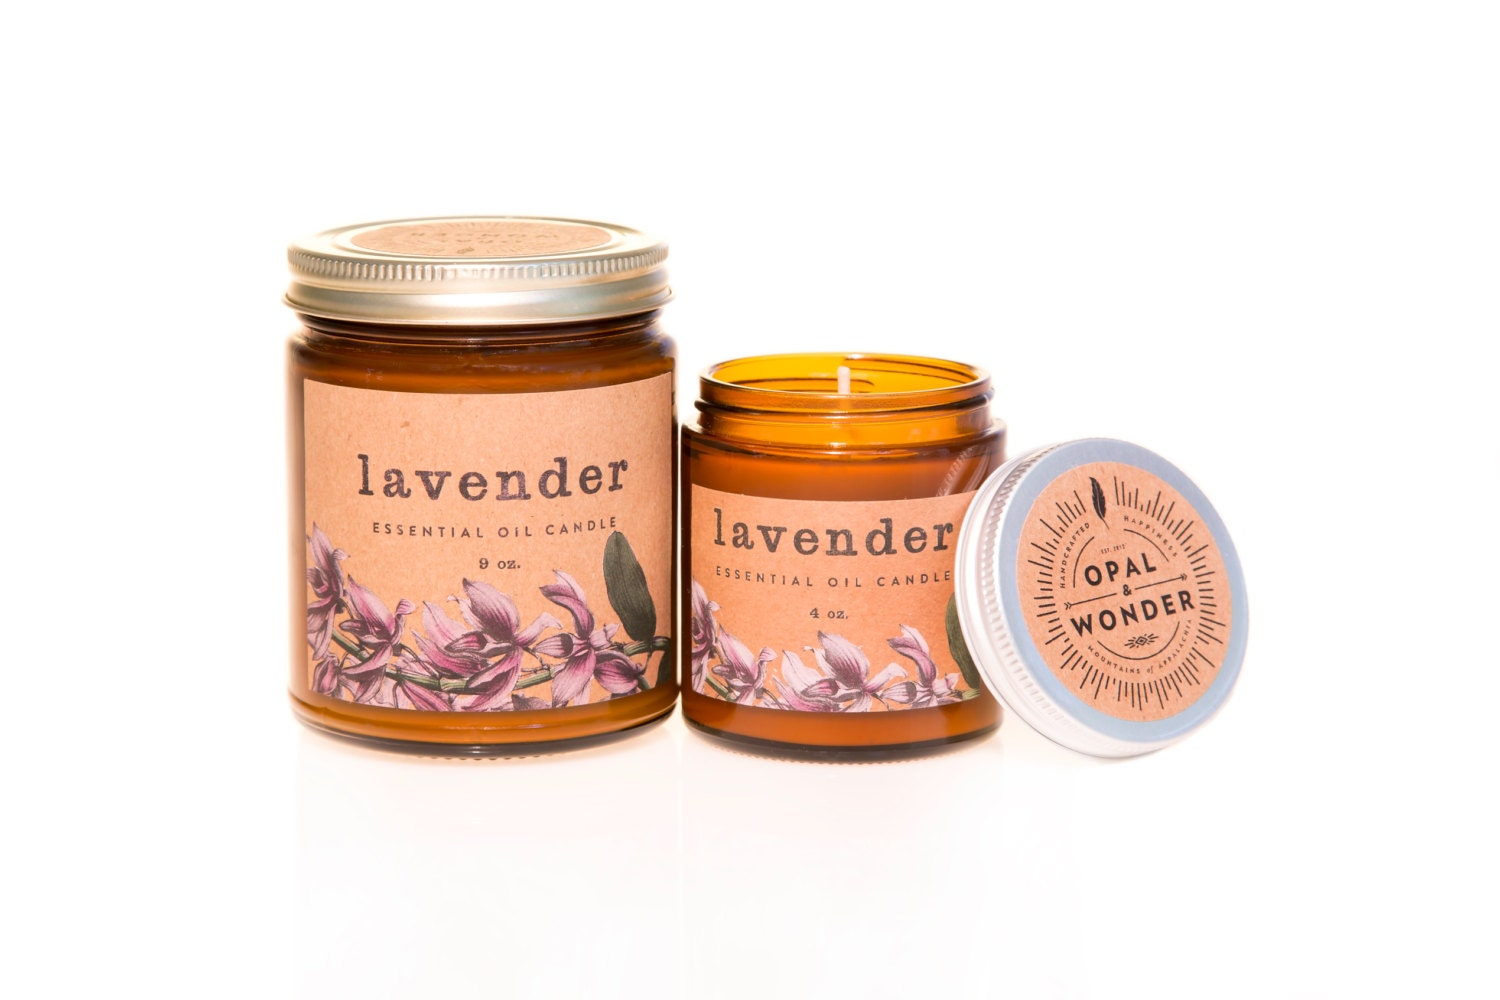 Lavender oil candle